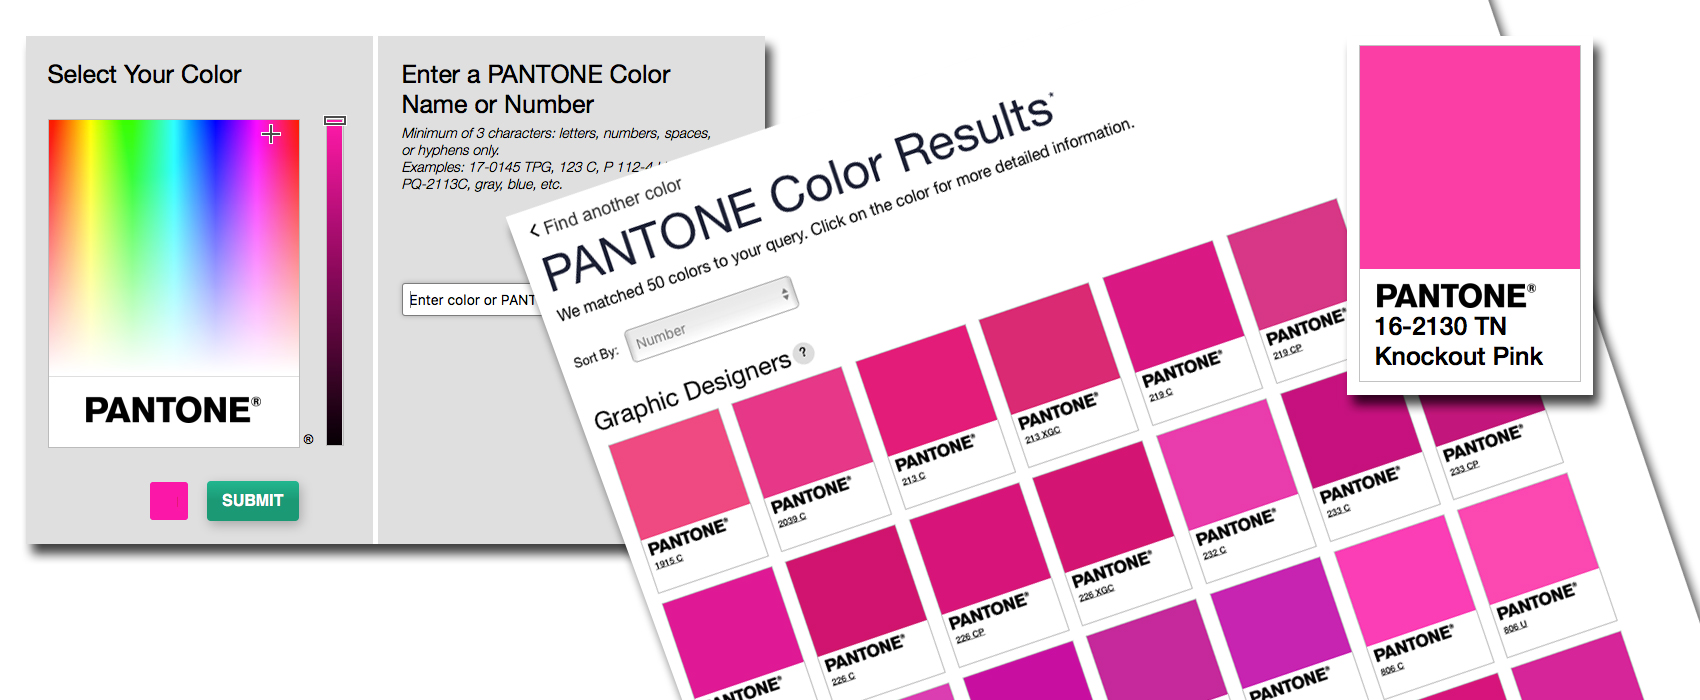 The New PANTONE Color Finder ‹ Fashion Trendsetter